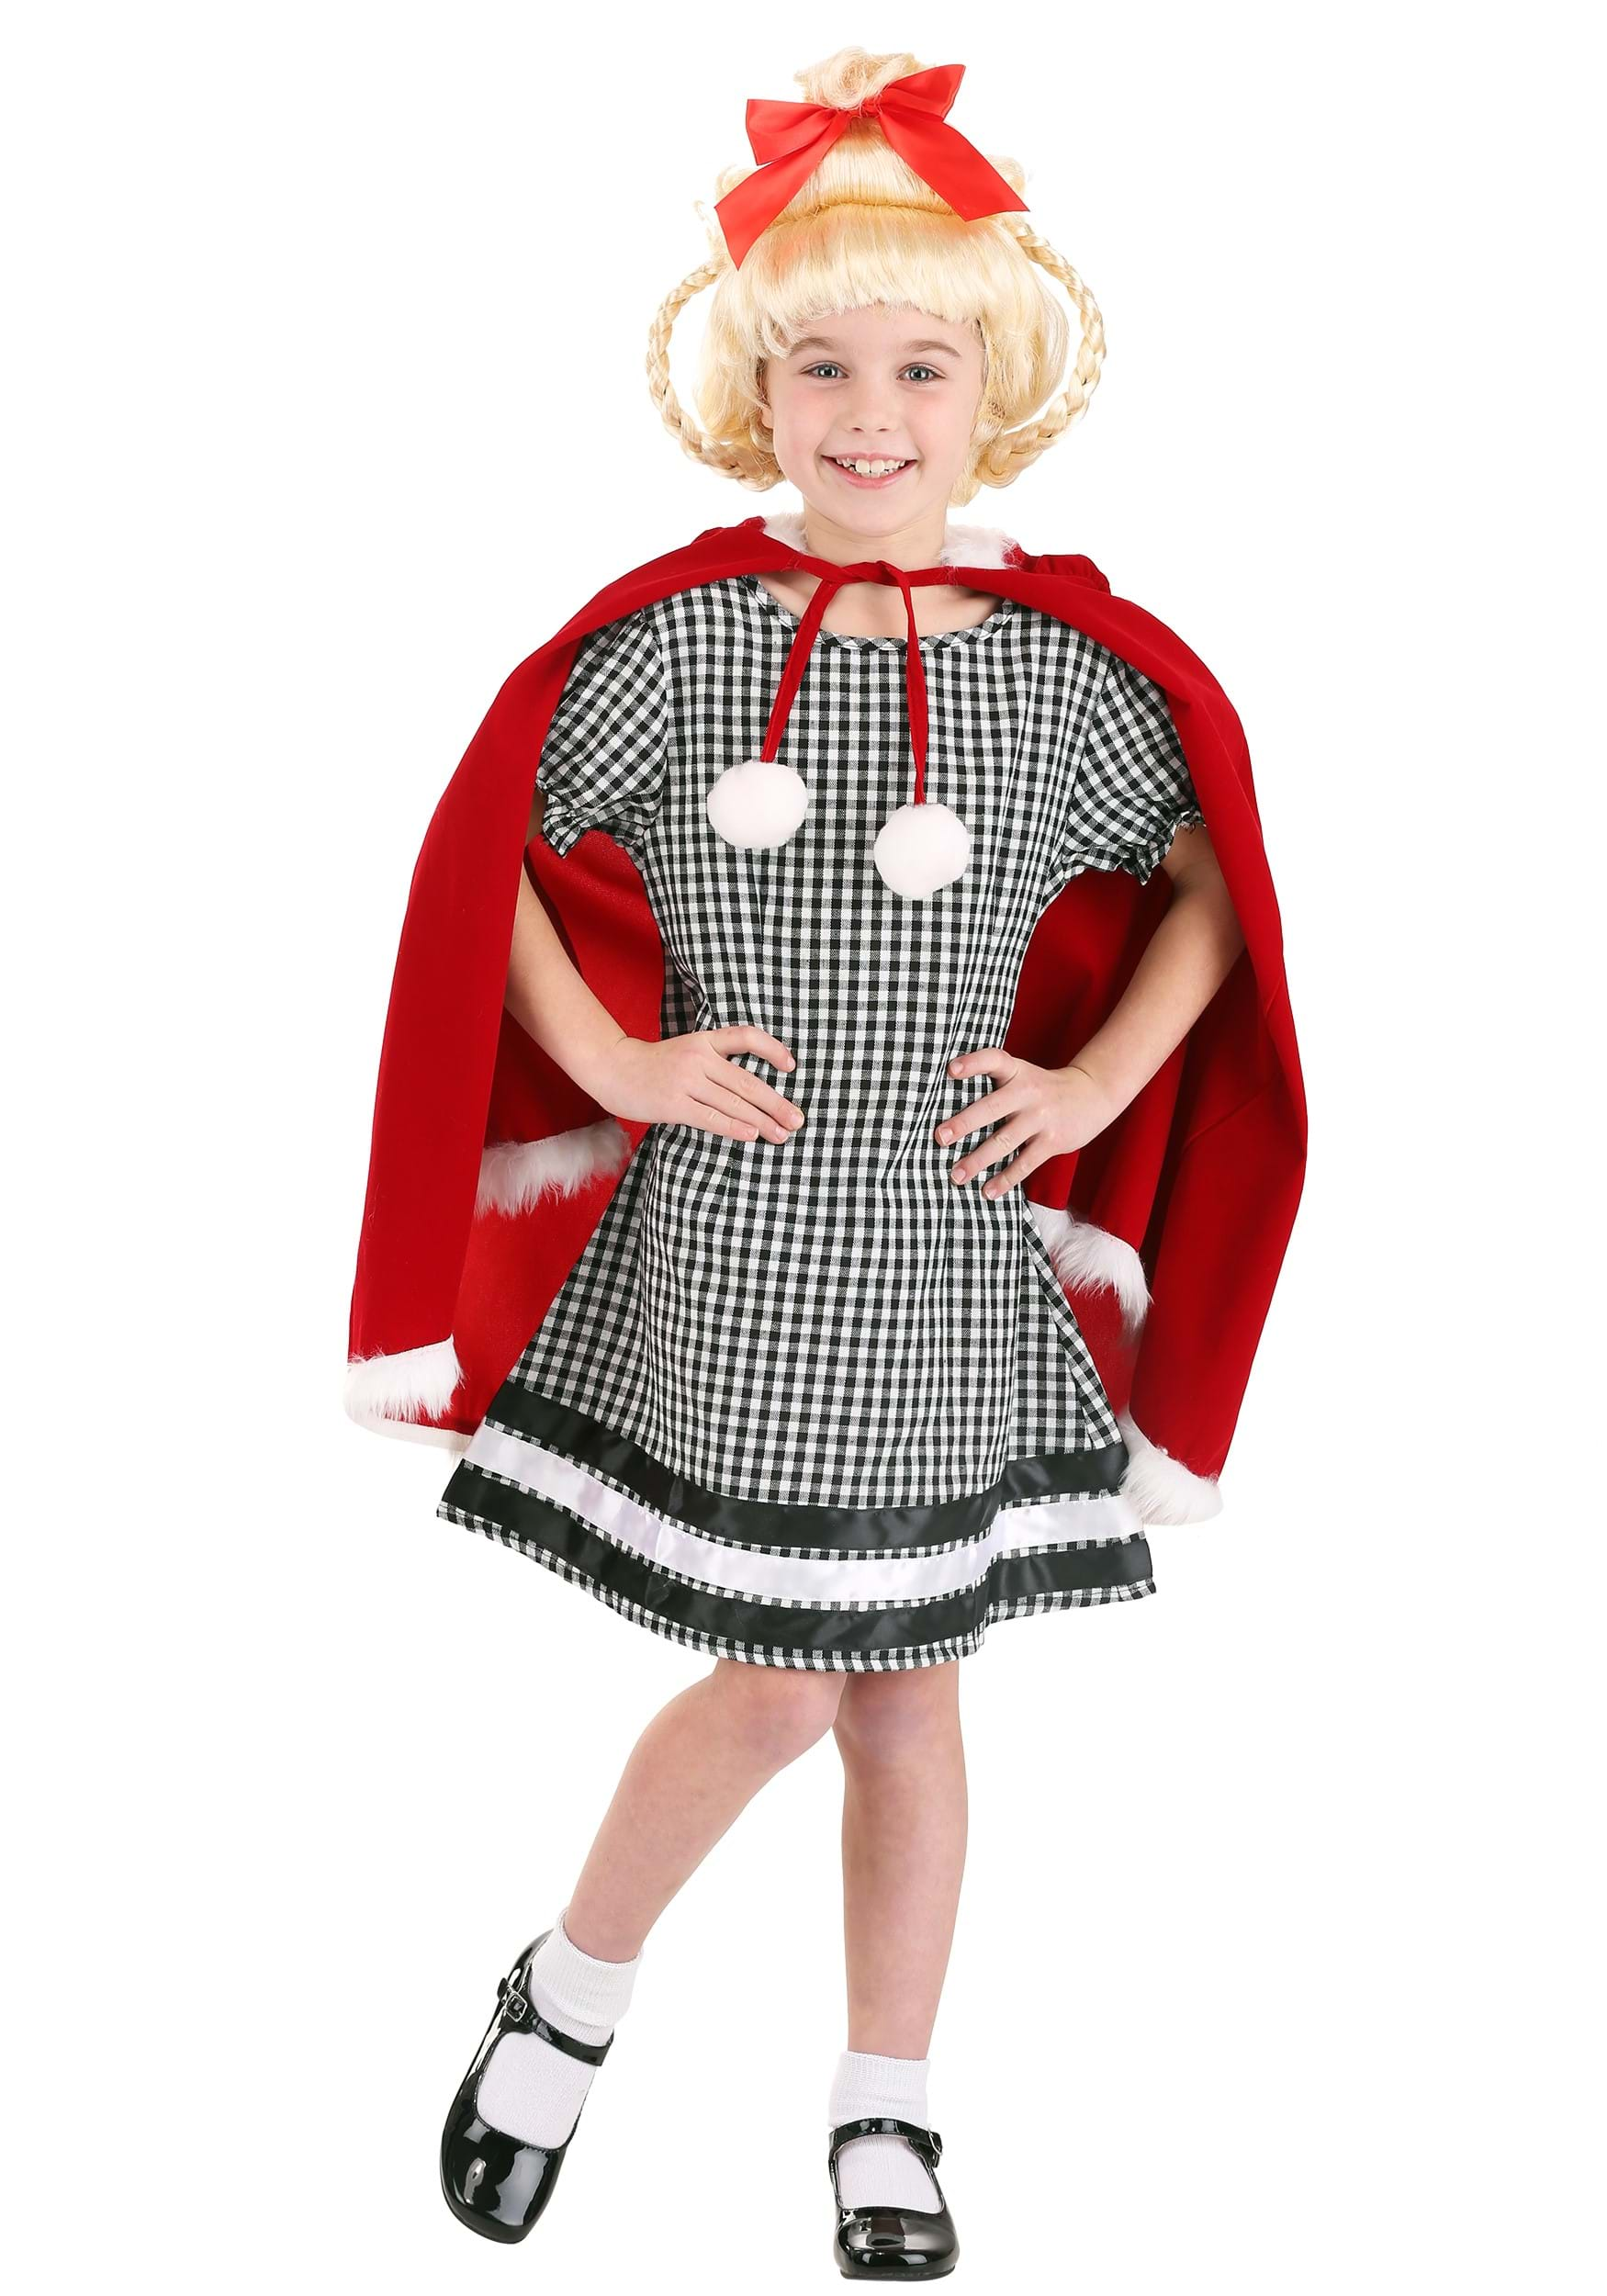 Christmas gown ideas 70s halloween - Christmas Girl Costume